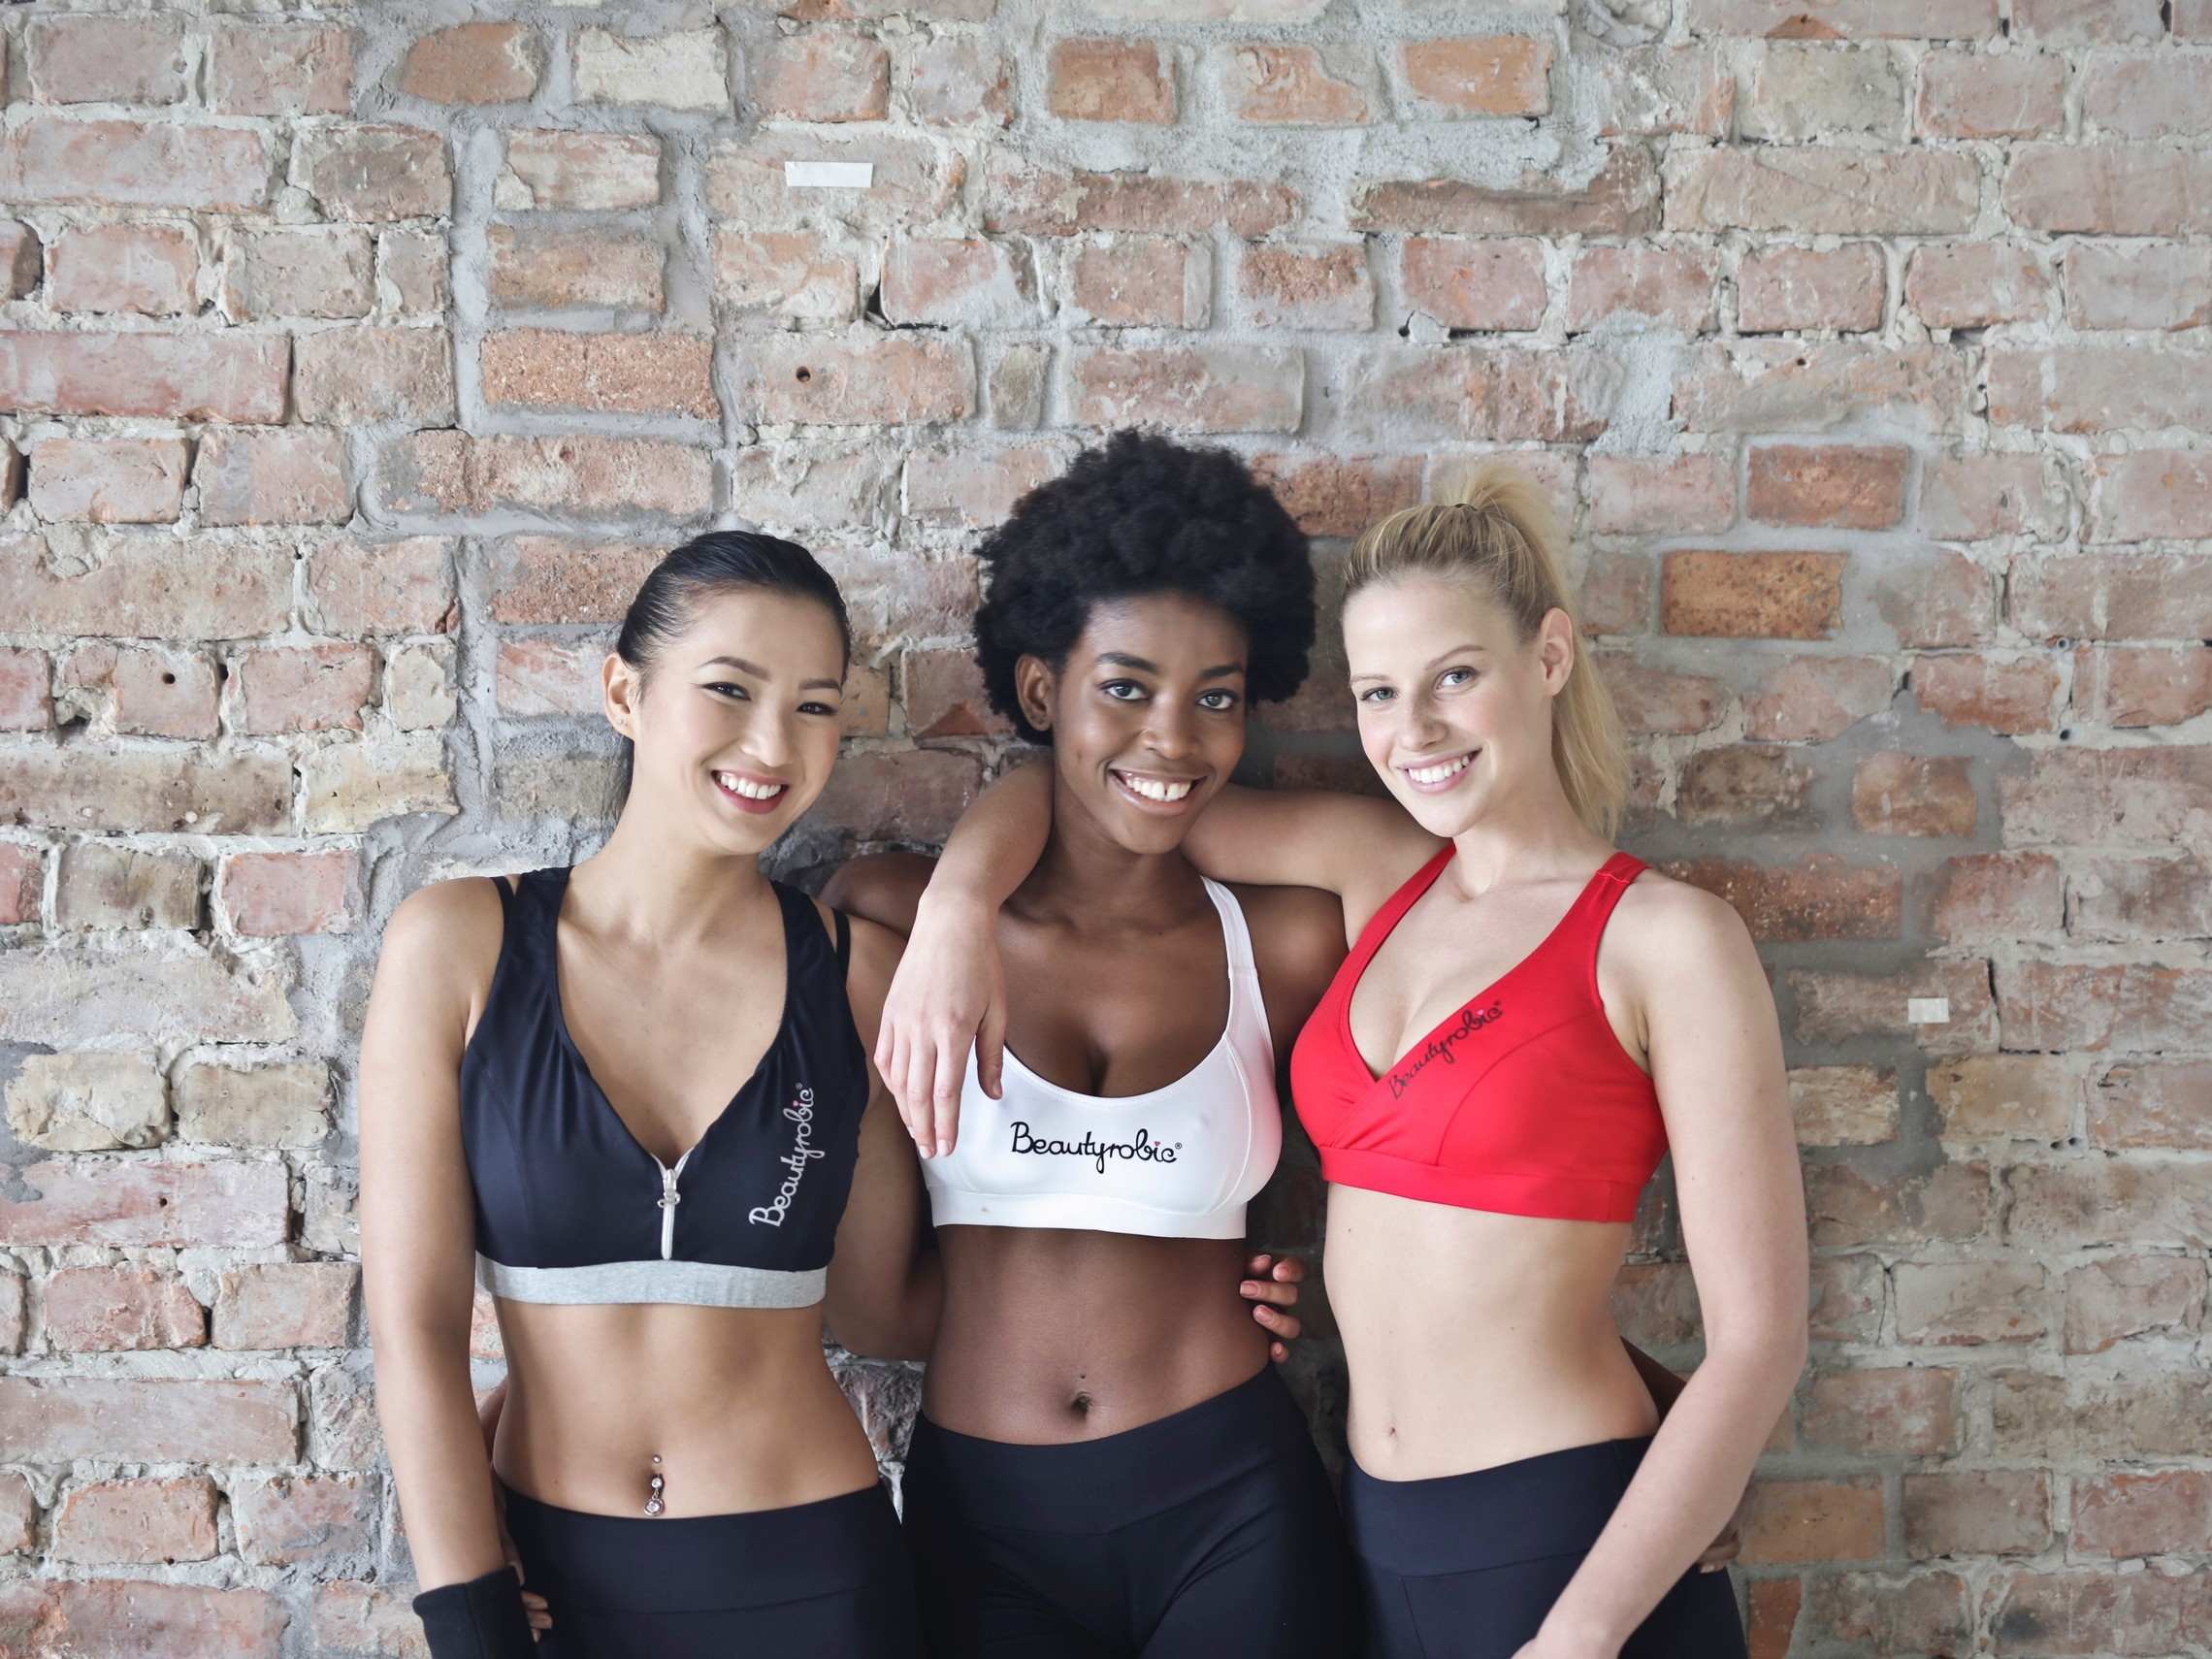 The women in active wear